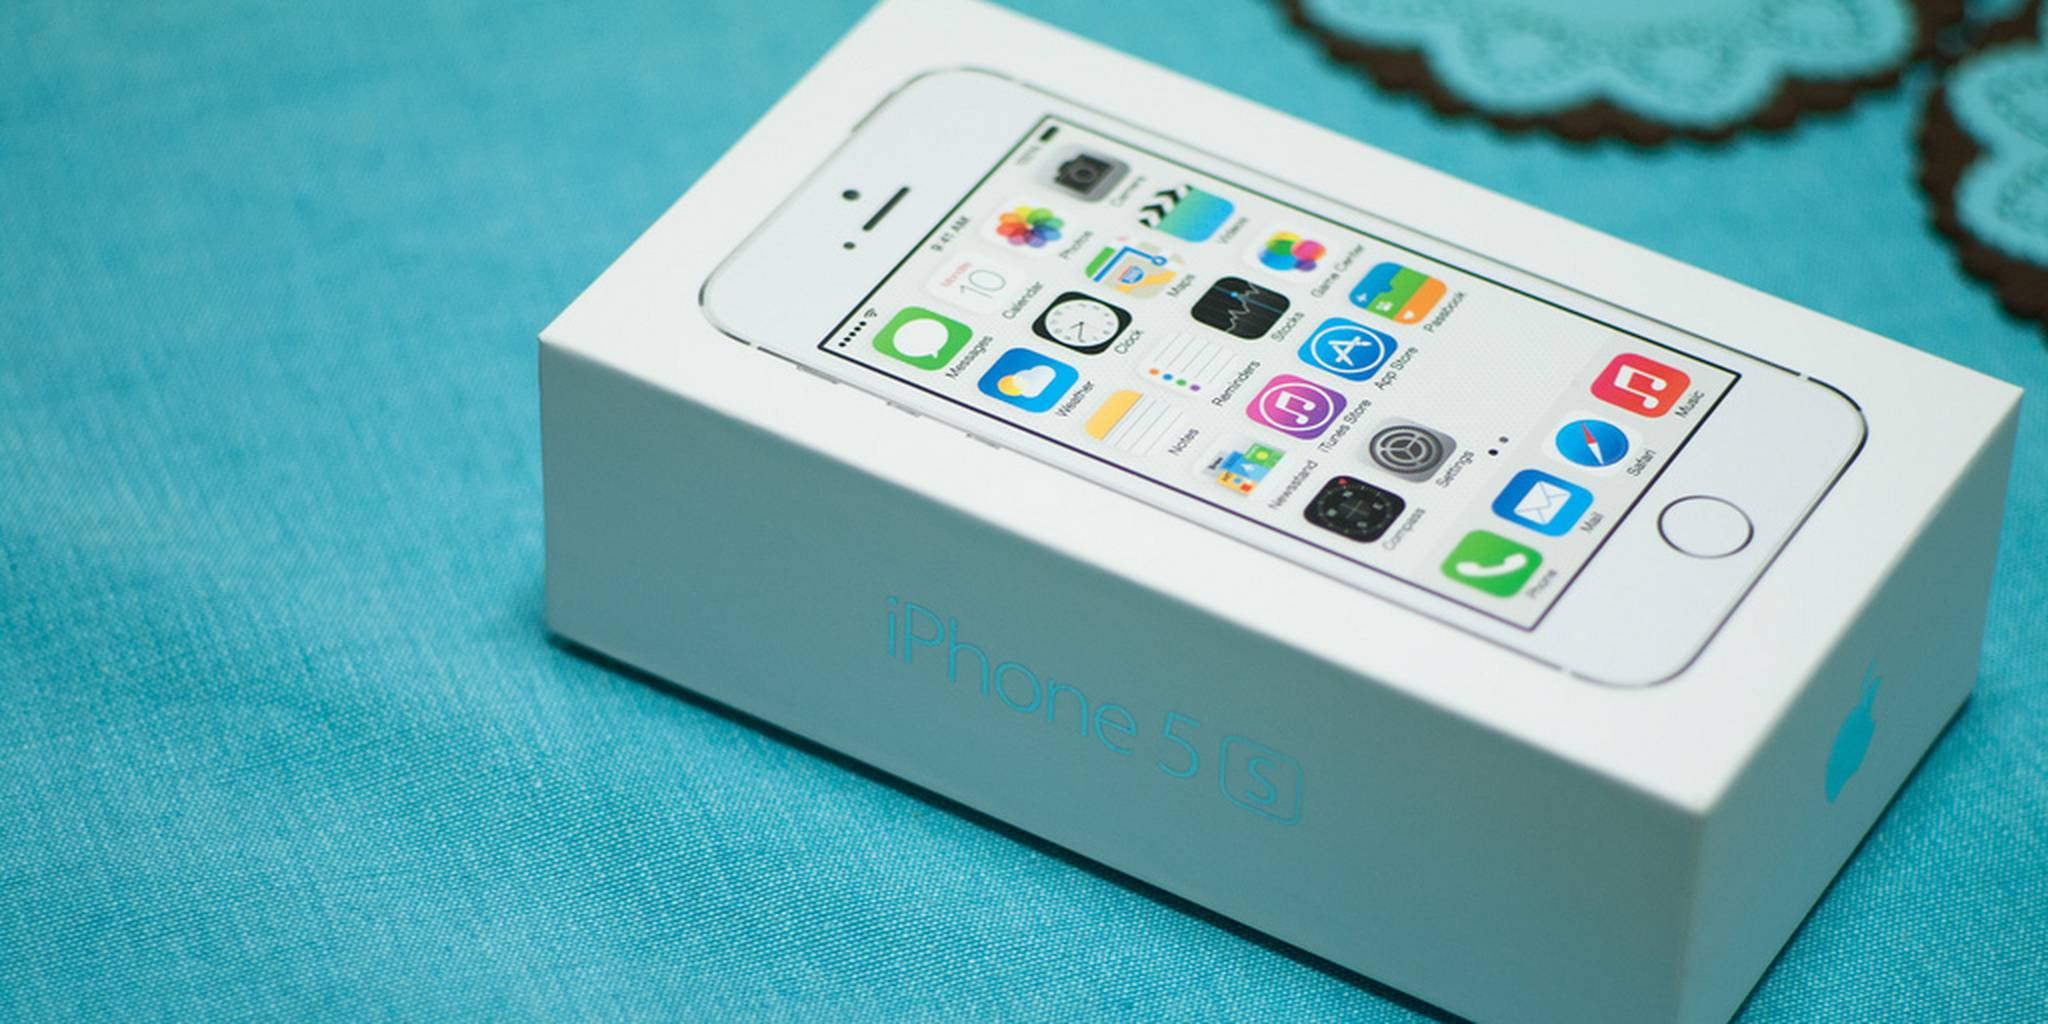 iPhone 5S in the box